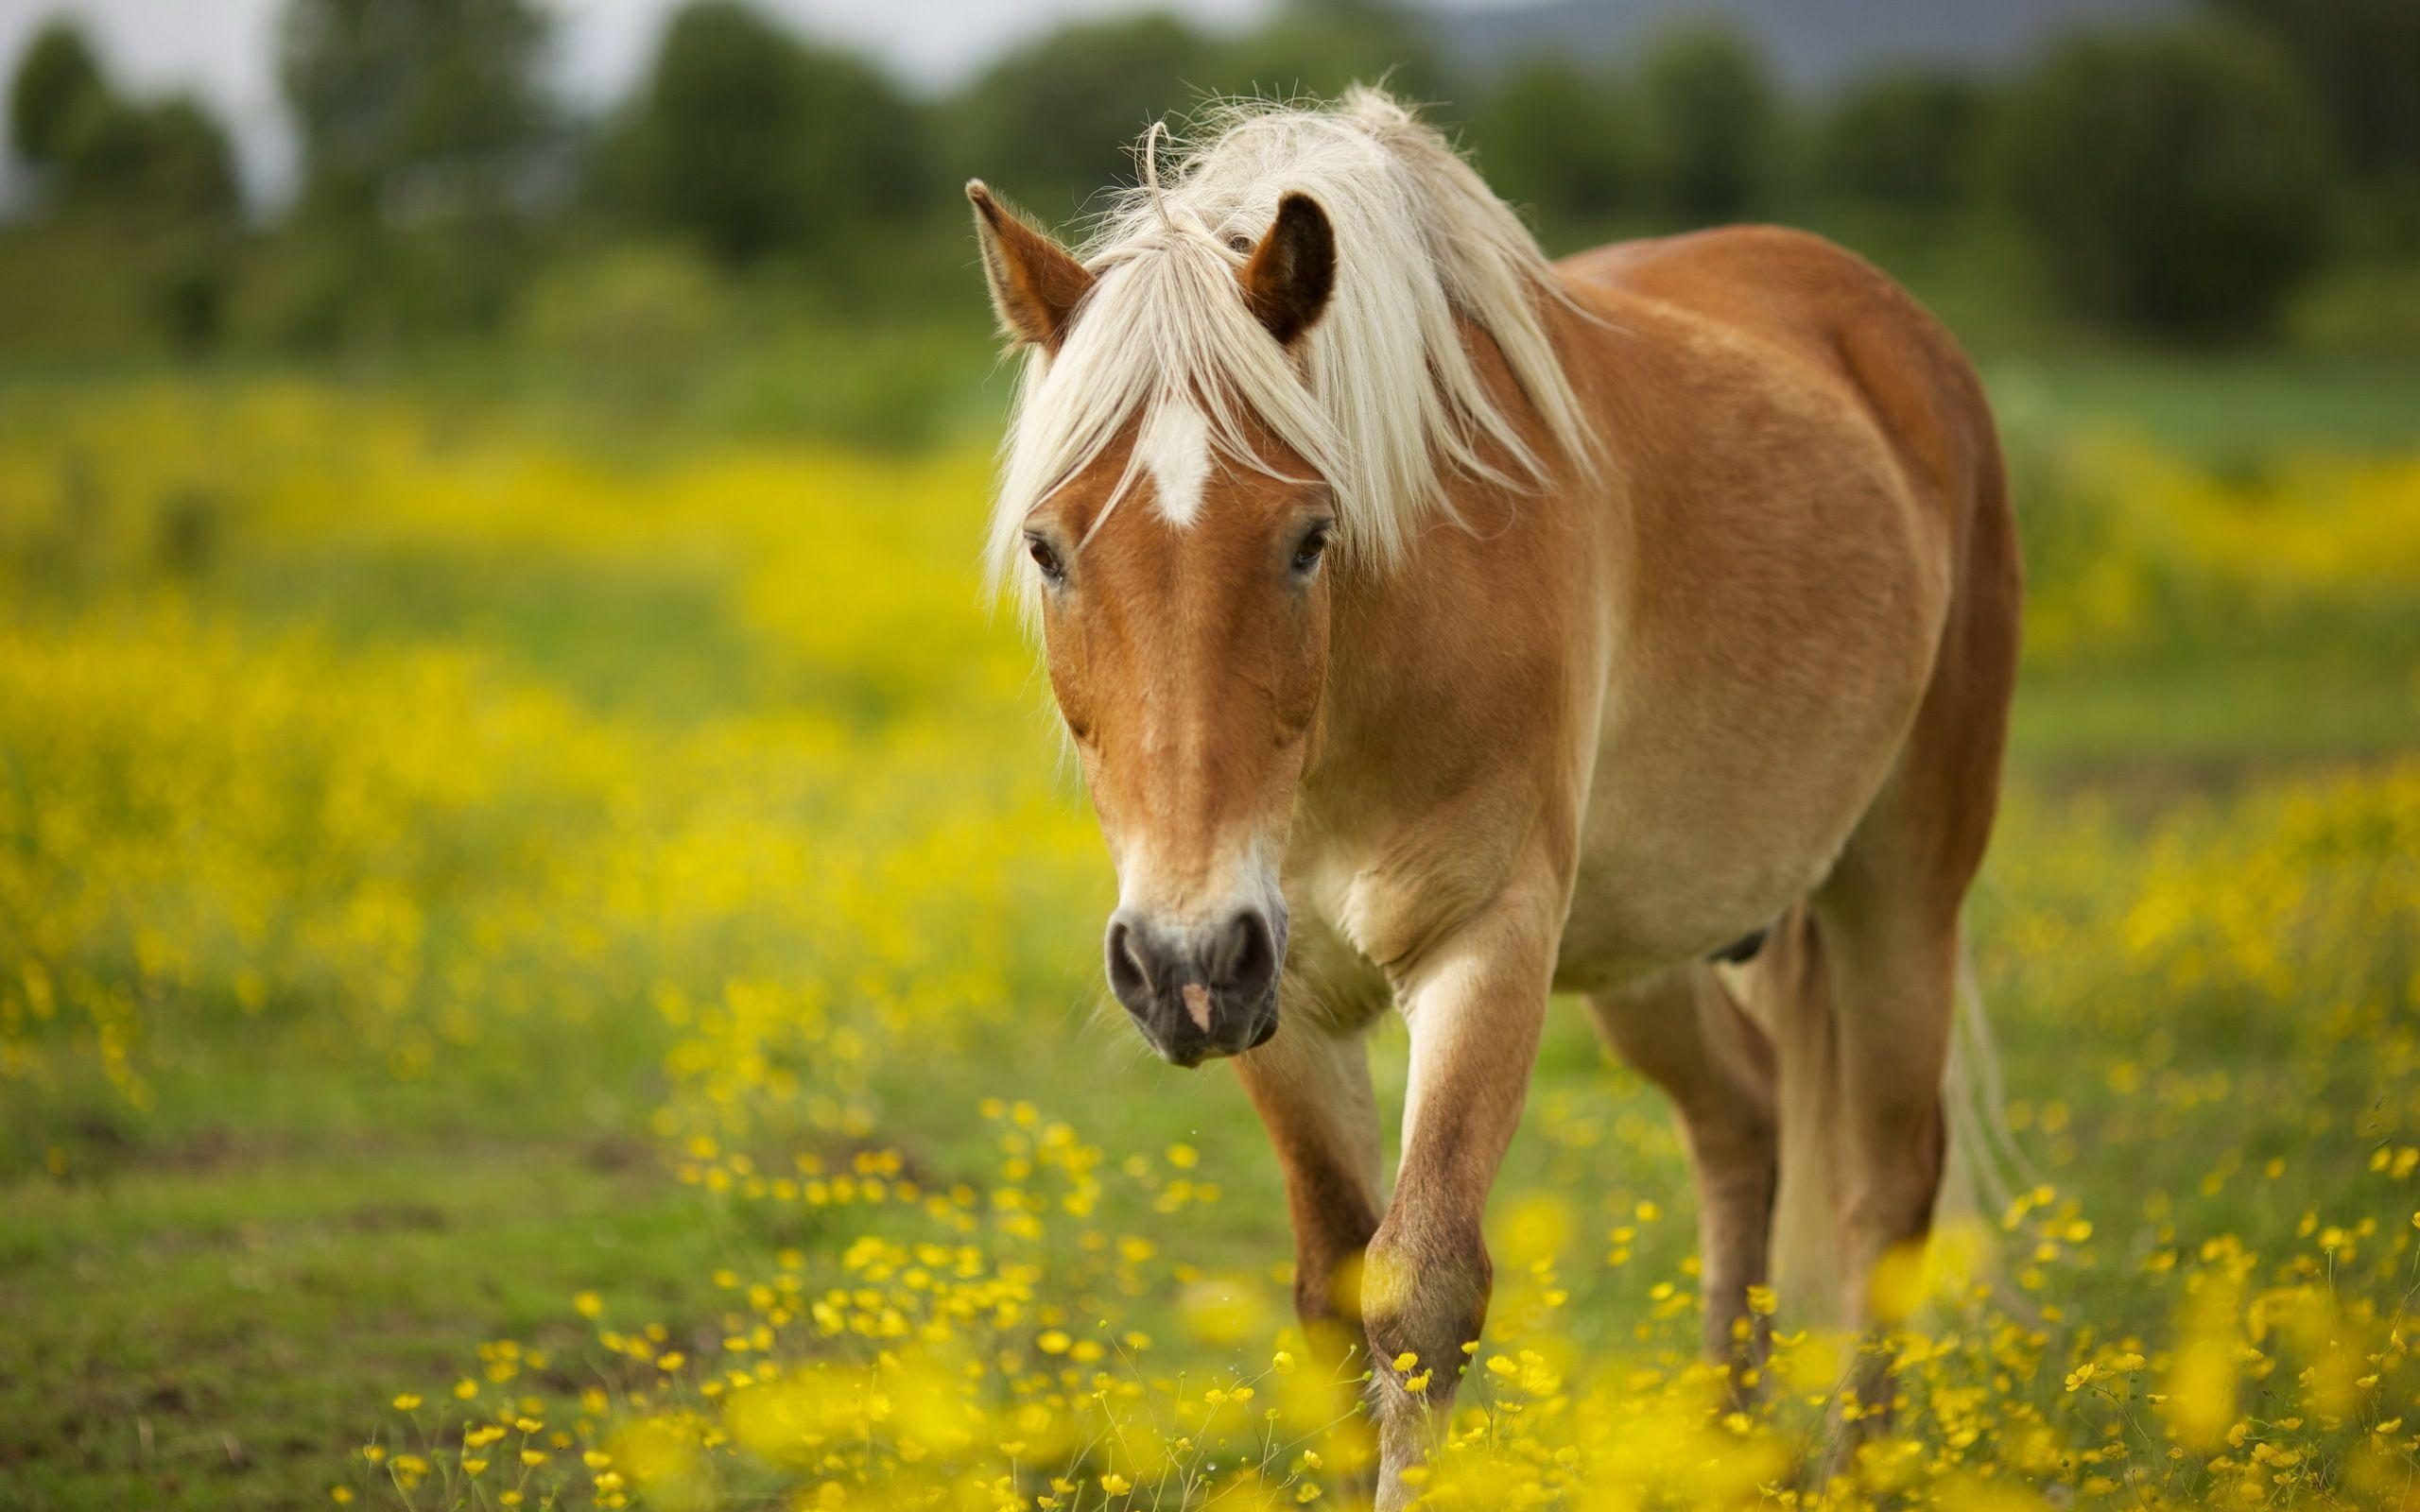 spring wild horse wallpaper - photo #23